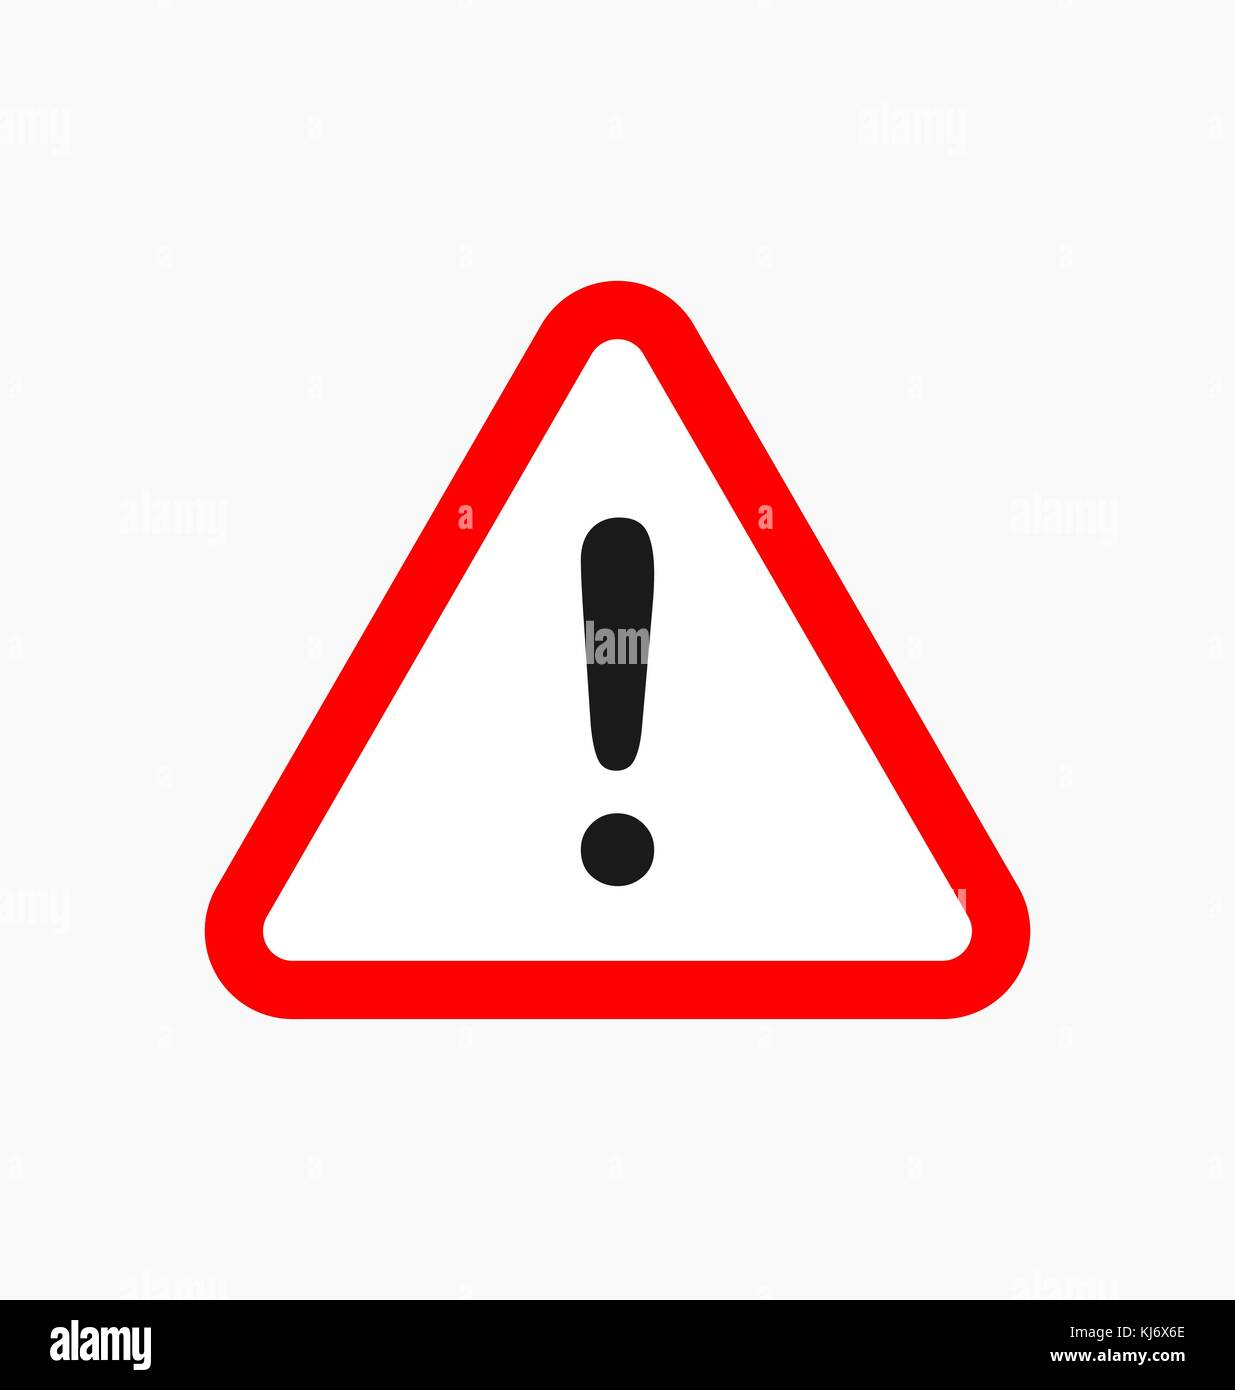 Warning icon / sign in flat style isolated. Caution symbol for your web site, logo, app, UI design. Vector illustration. - Stock Image